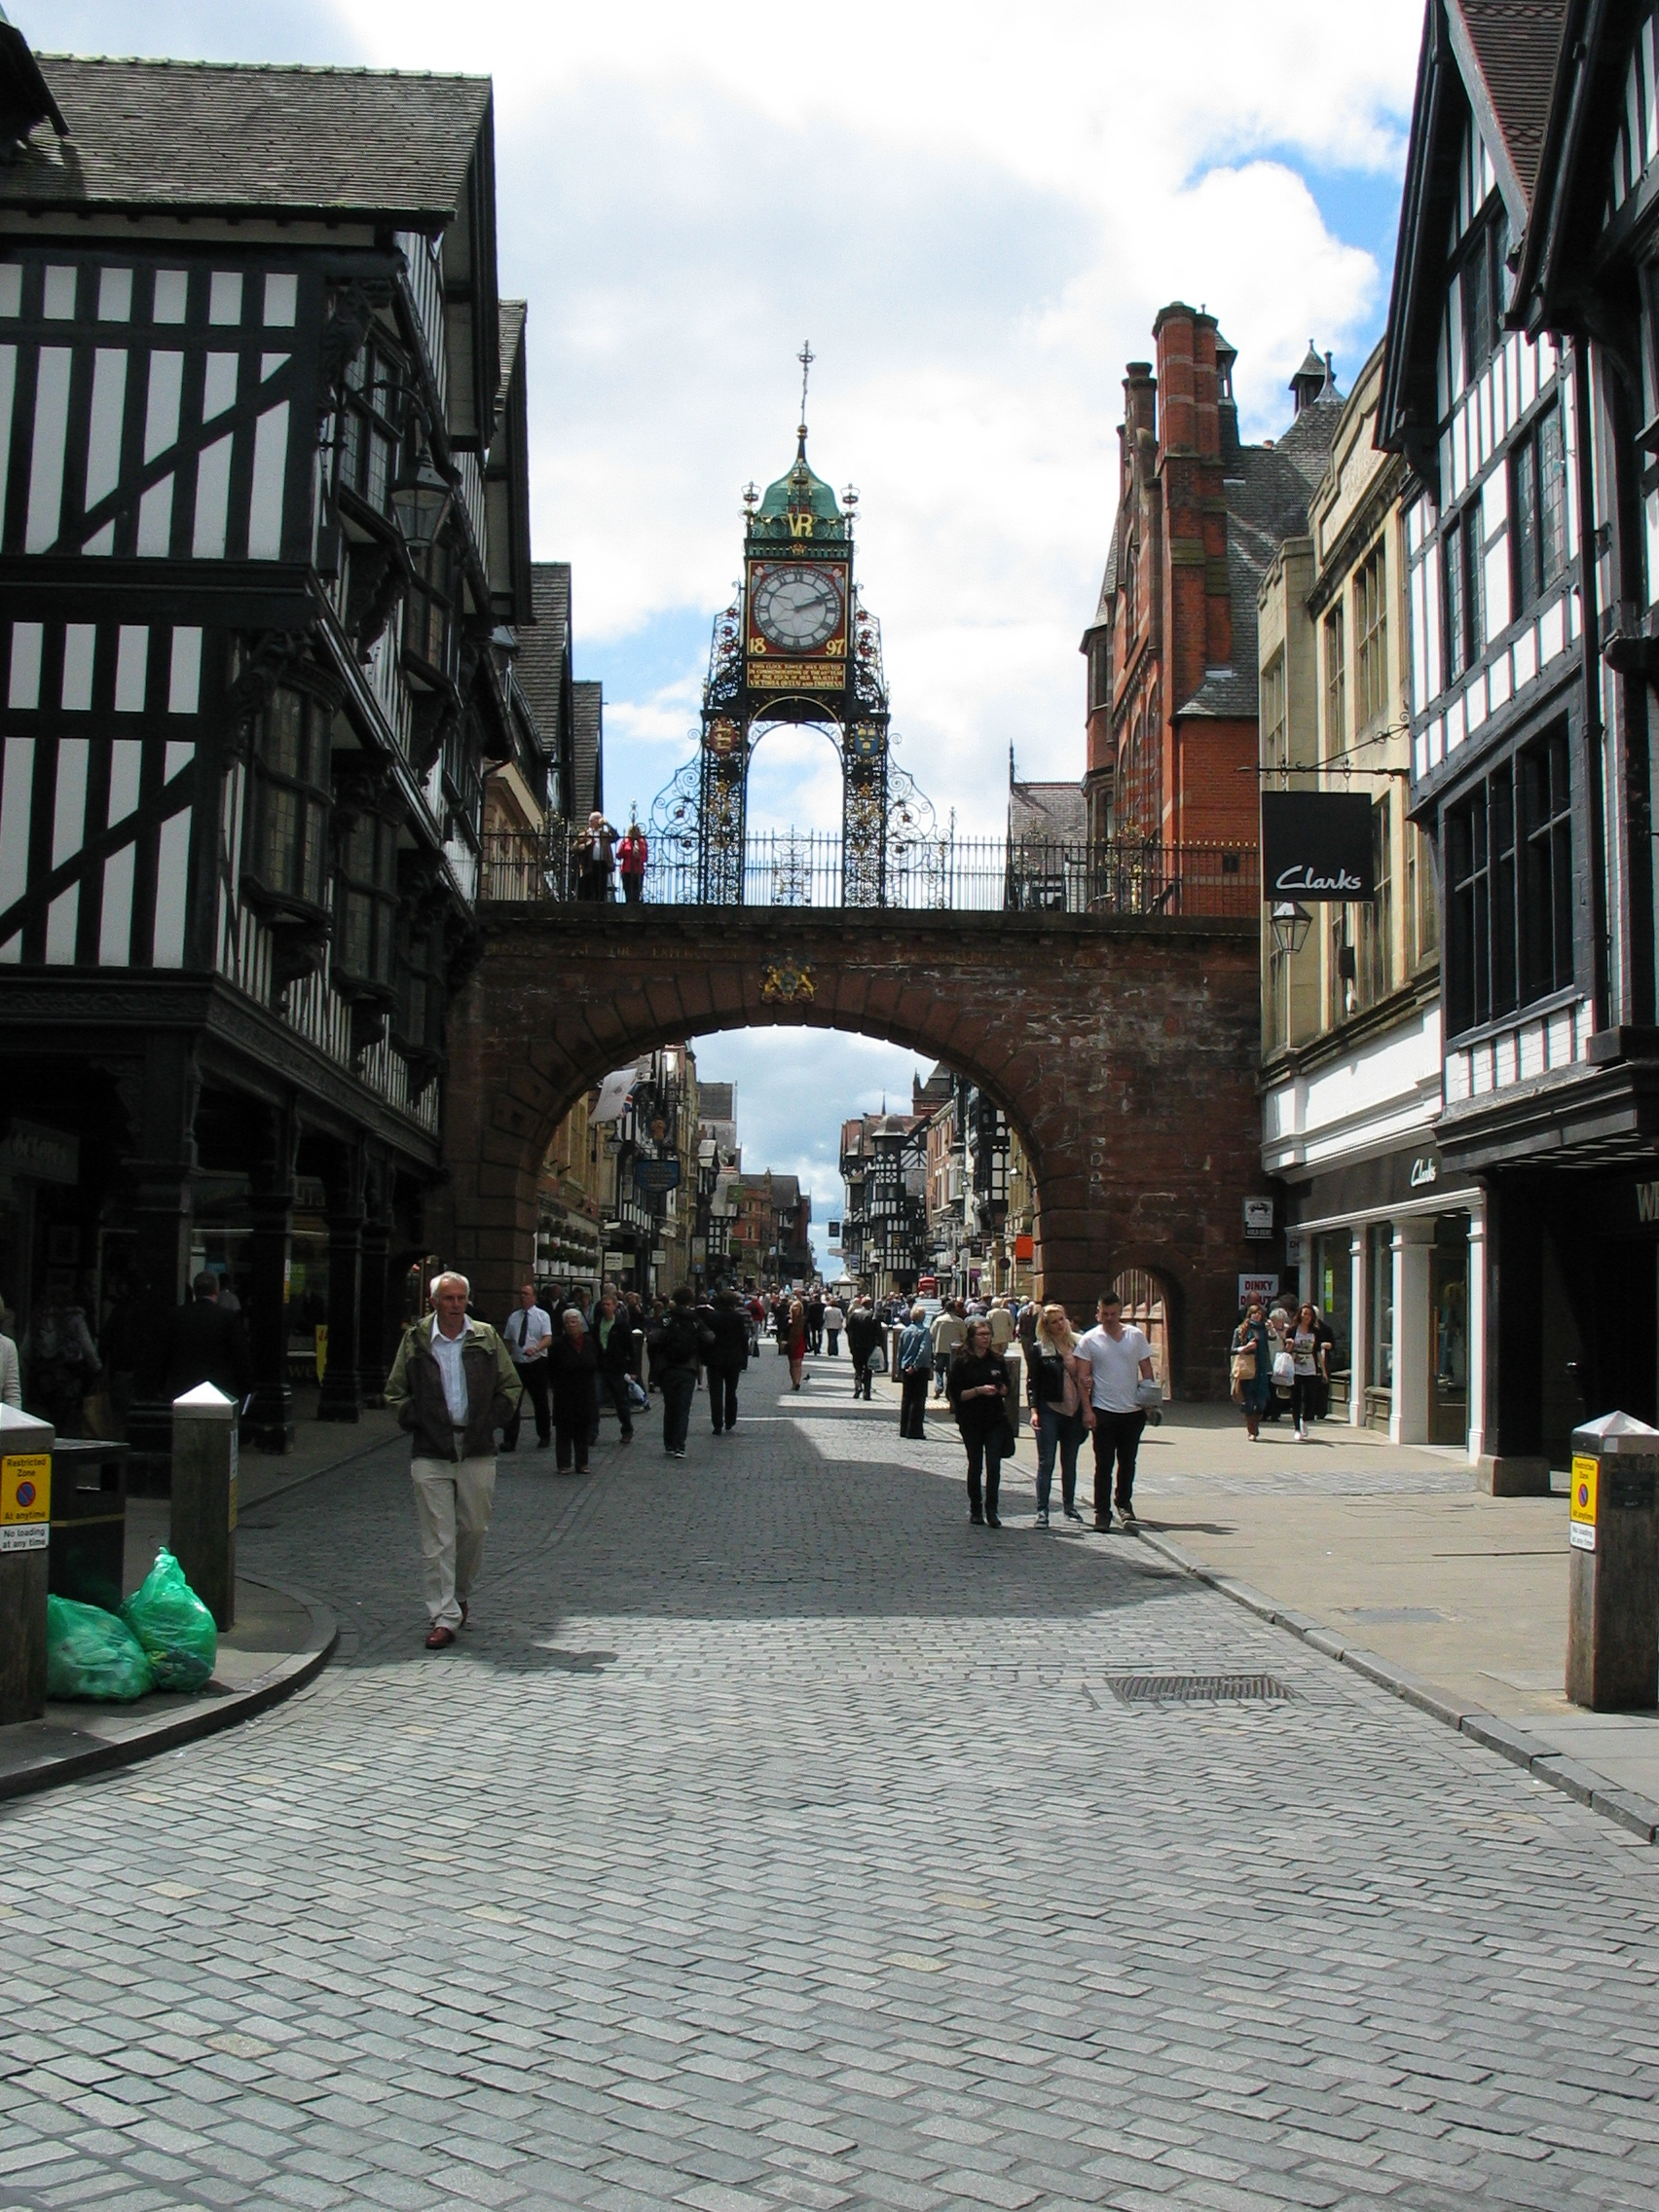 Eastgate Clock, Chester - By Kiril Kostovbg via Wikimedia Commons